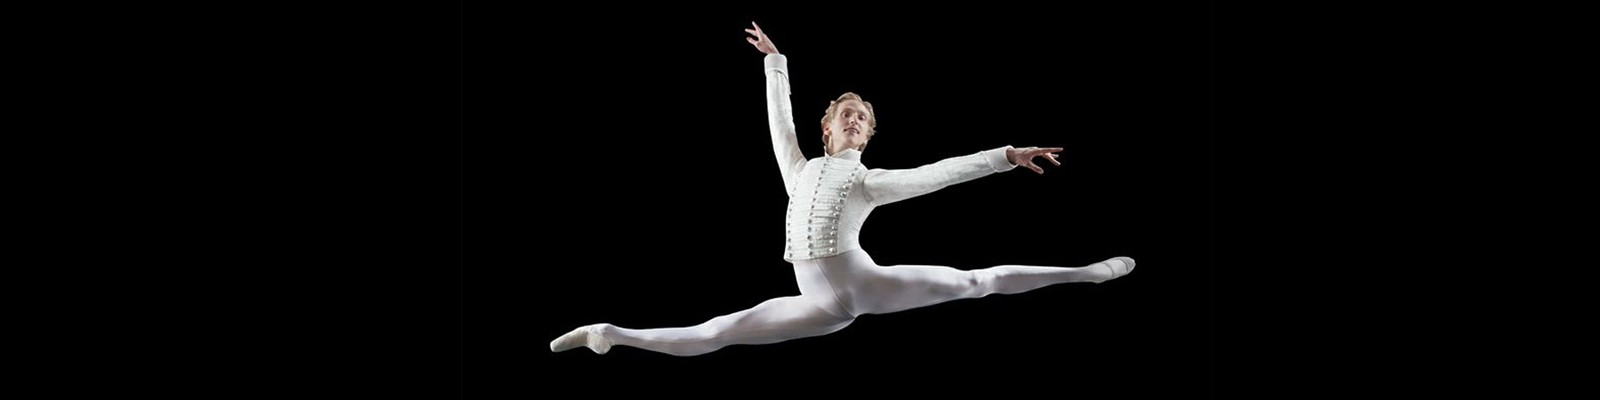 Image - David Hallberg - Principal Dancer